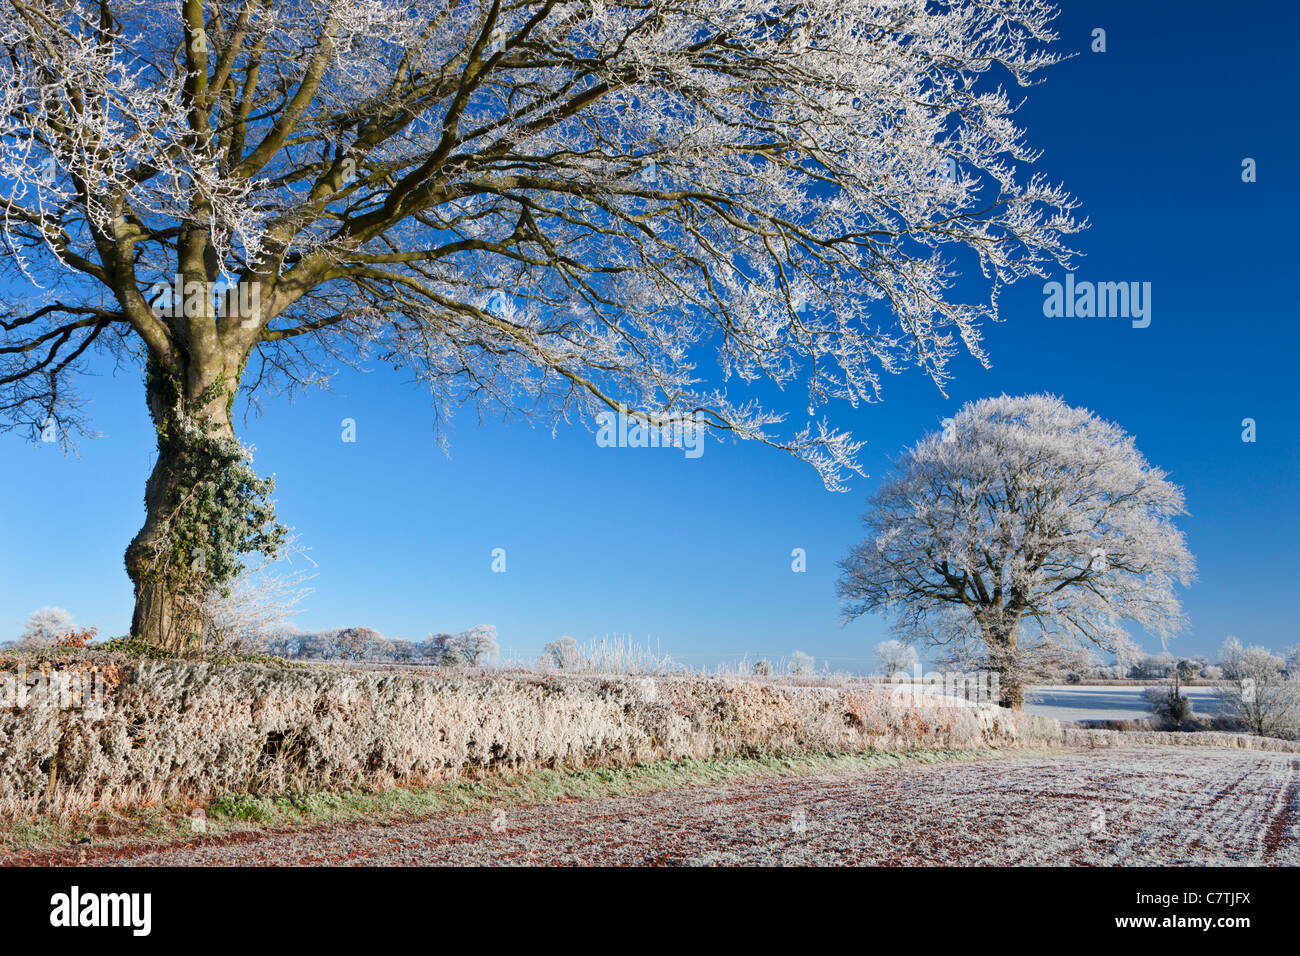 Hoar frosted farmland and trees, Bow, Mid Devon, England. Winter (December) 2010. - Stock Image